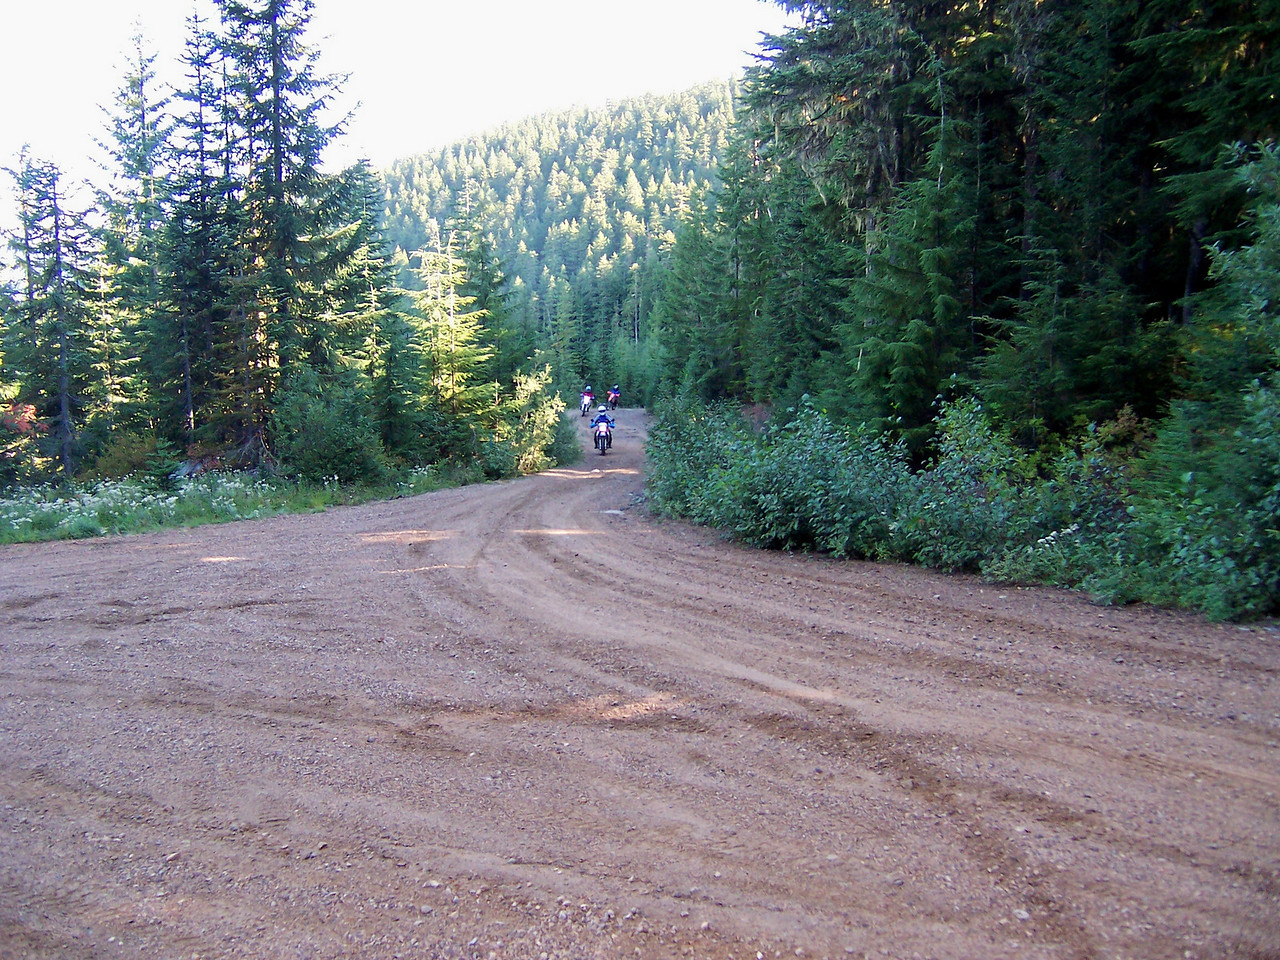 Saturday we had four rides going. This is the 5601 road & the start of Lan's Mt. St. Helens ride Dual Sport ride.